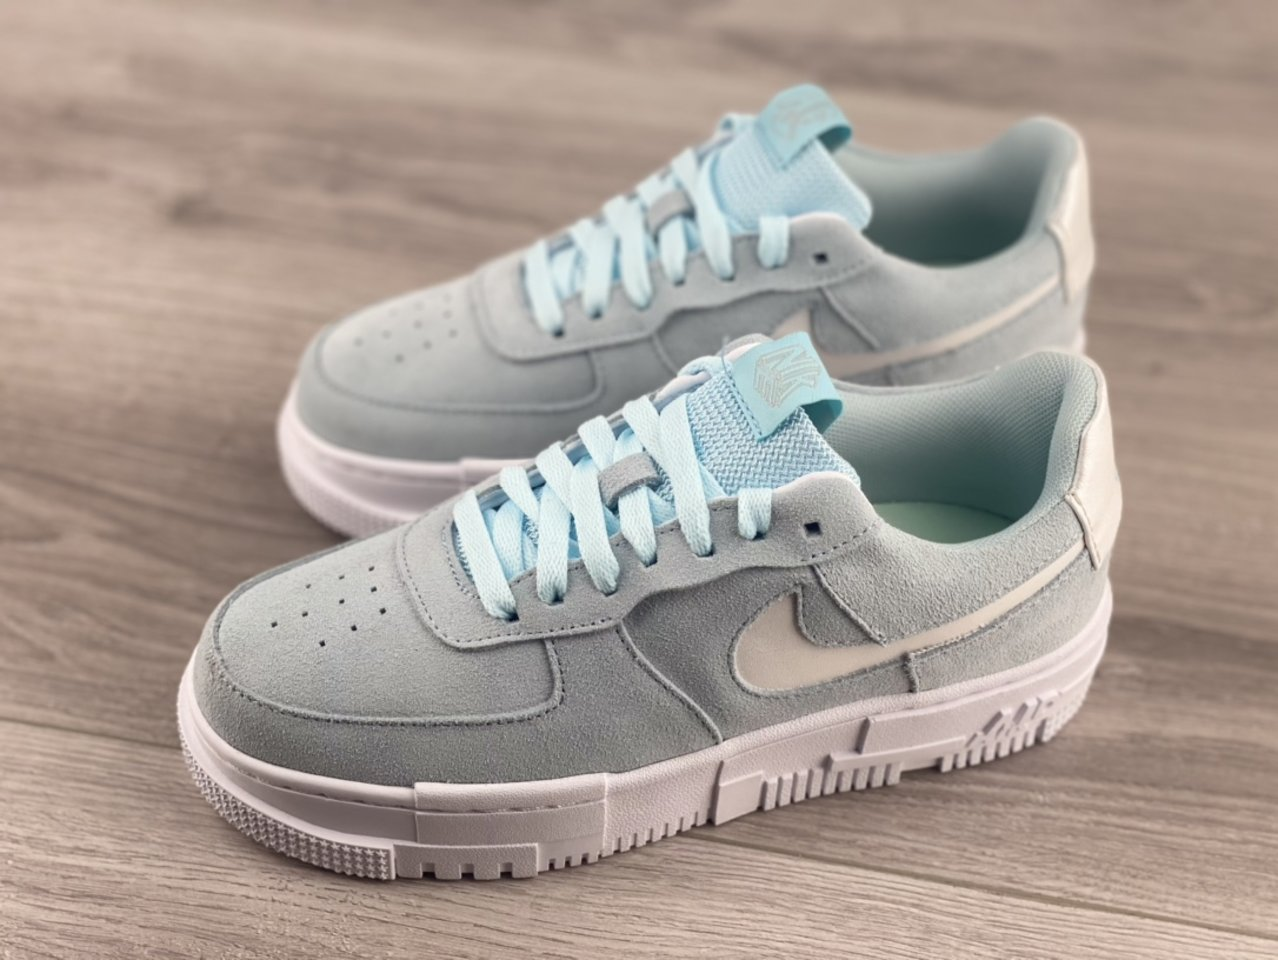 Nike Air Force 1 Pixel Glacier Blue Casual Shoes DH3855-400 overall